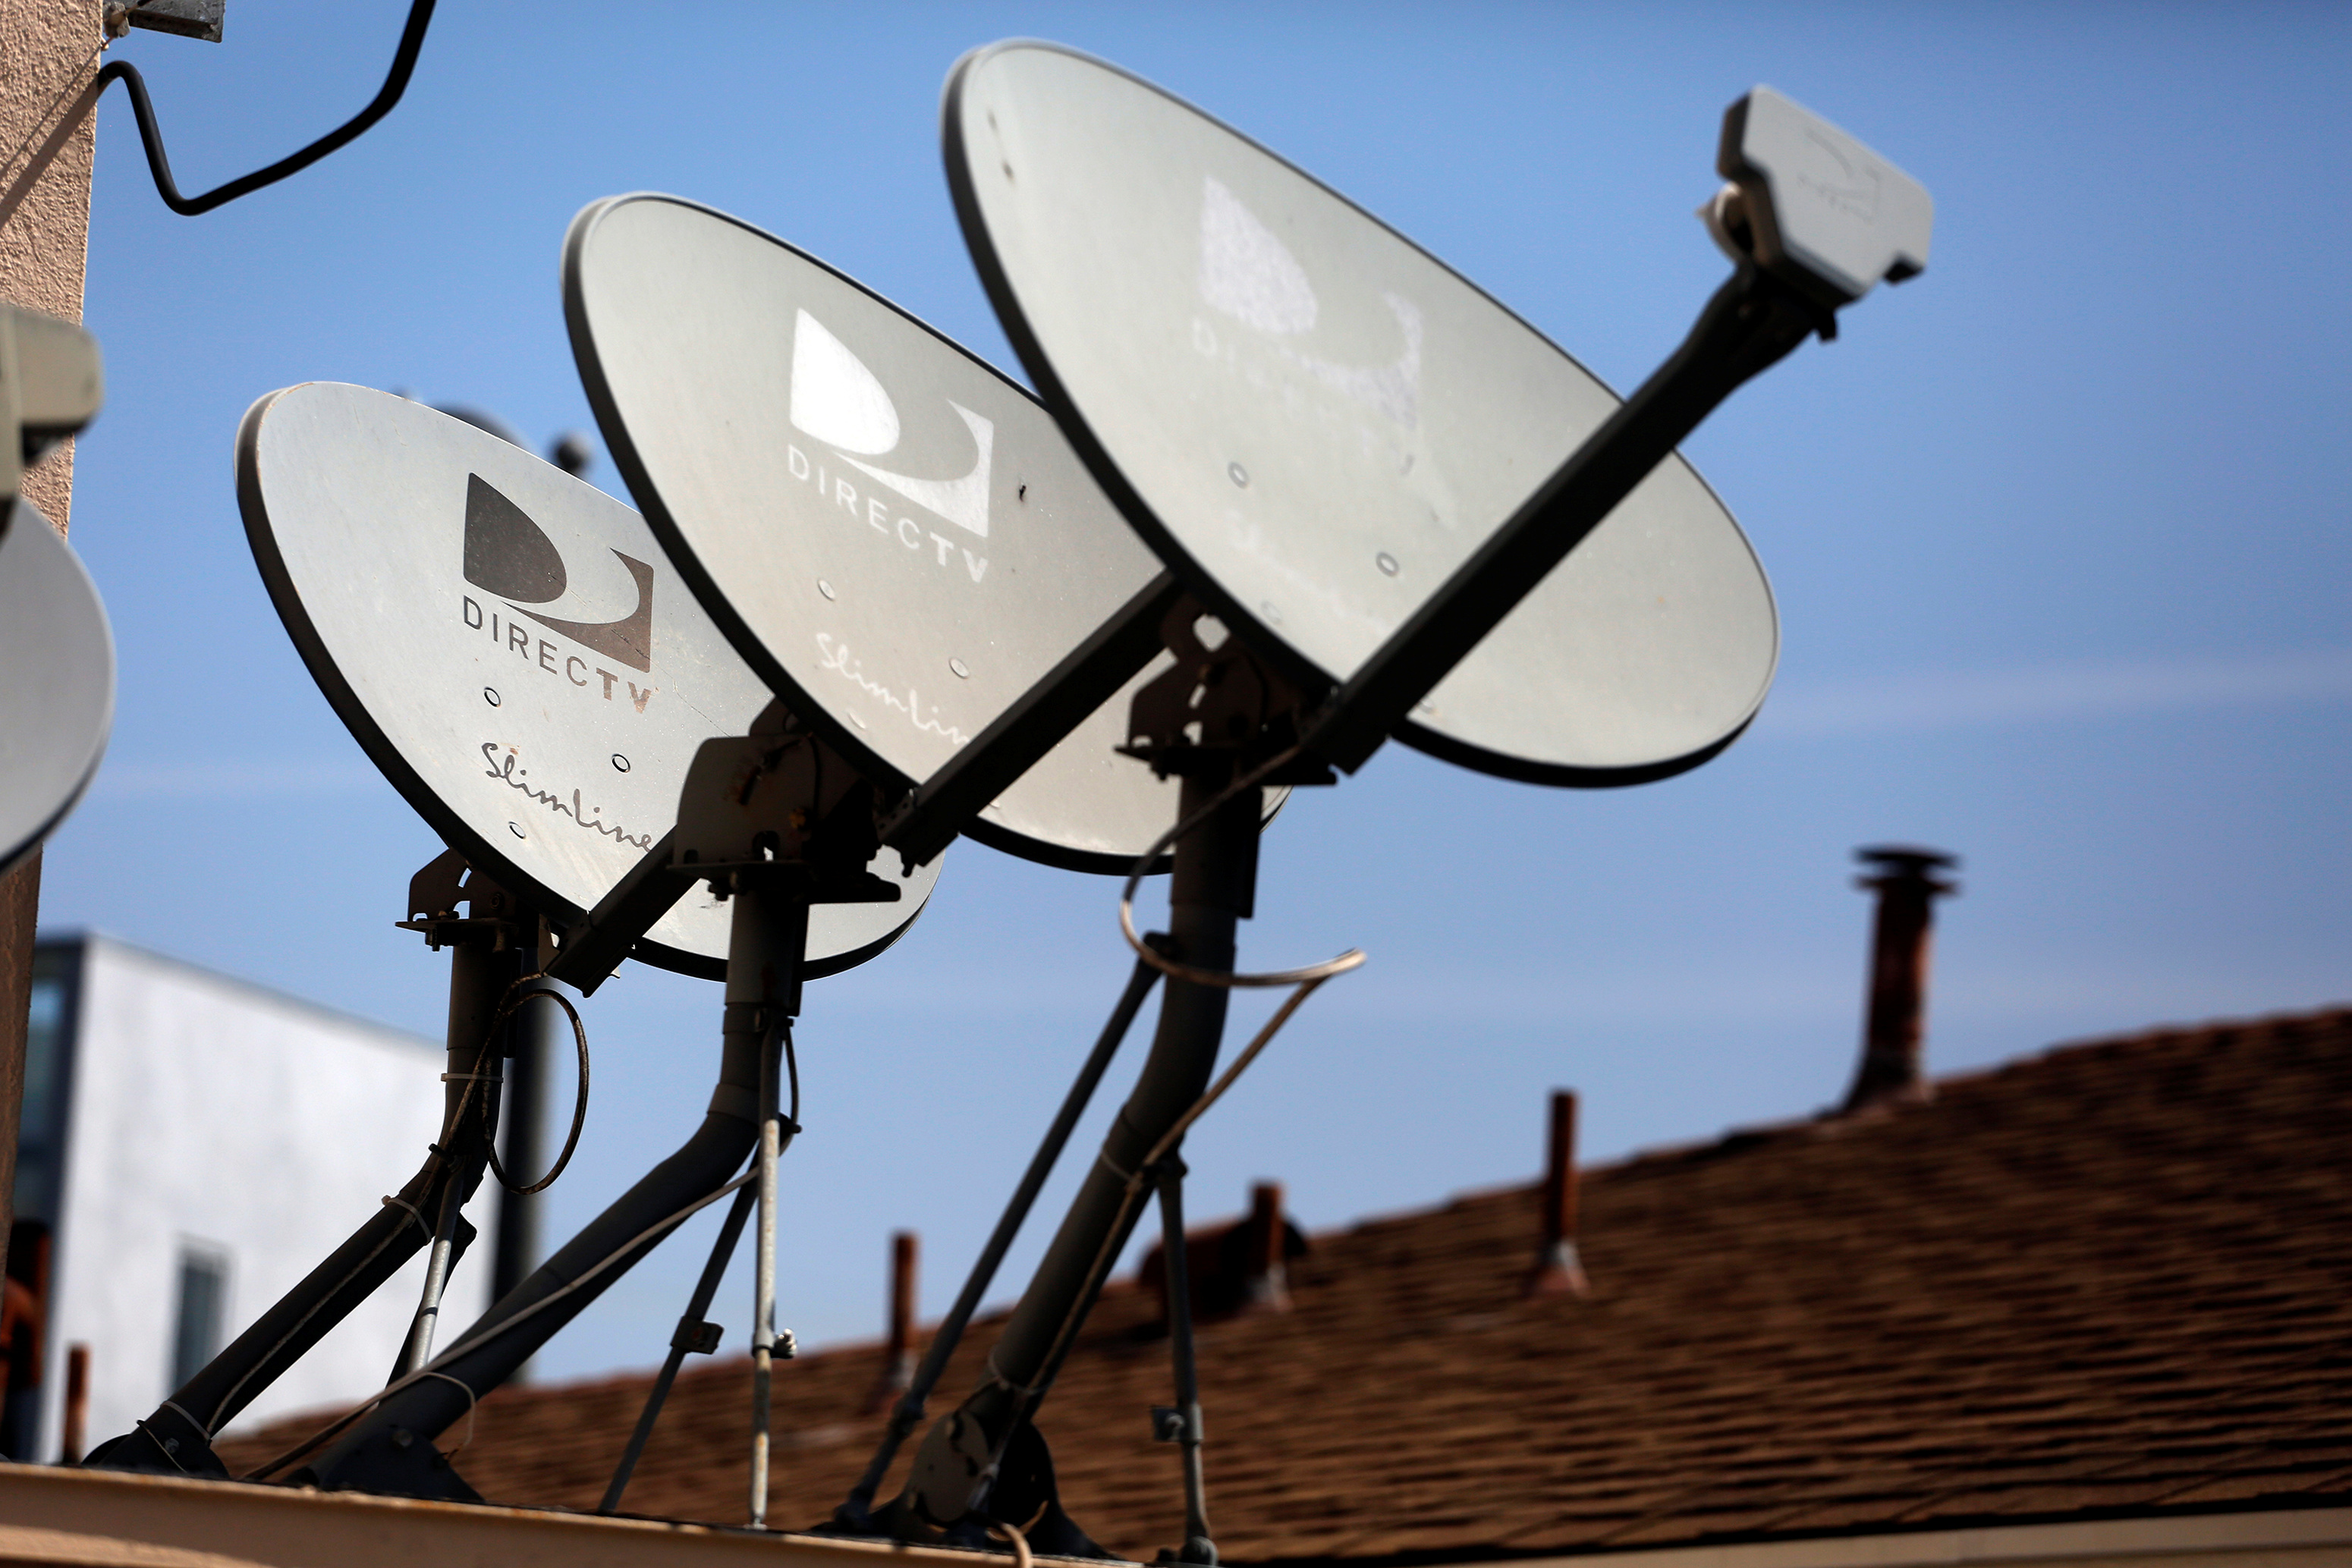 DirecTV satellite dishes are seen on an apartment roof in Los Angeles, California in this file photo taken May 18, 2014.  REUTERS/Jonathan Alcorn